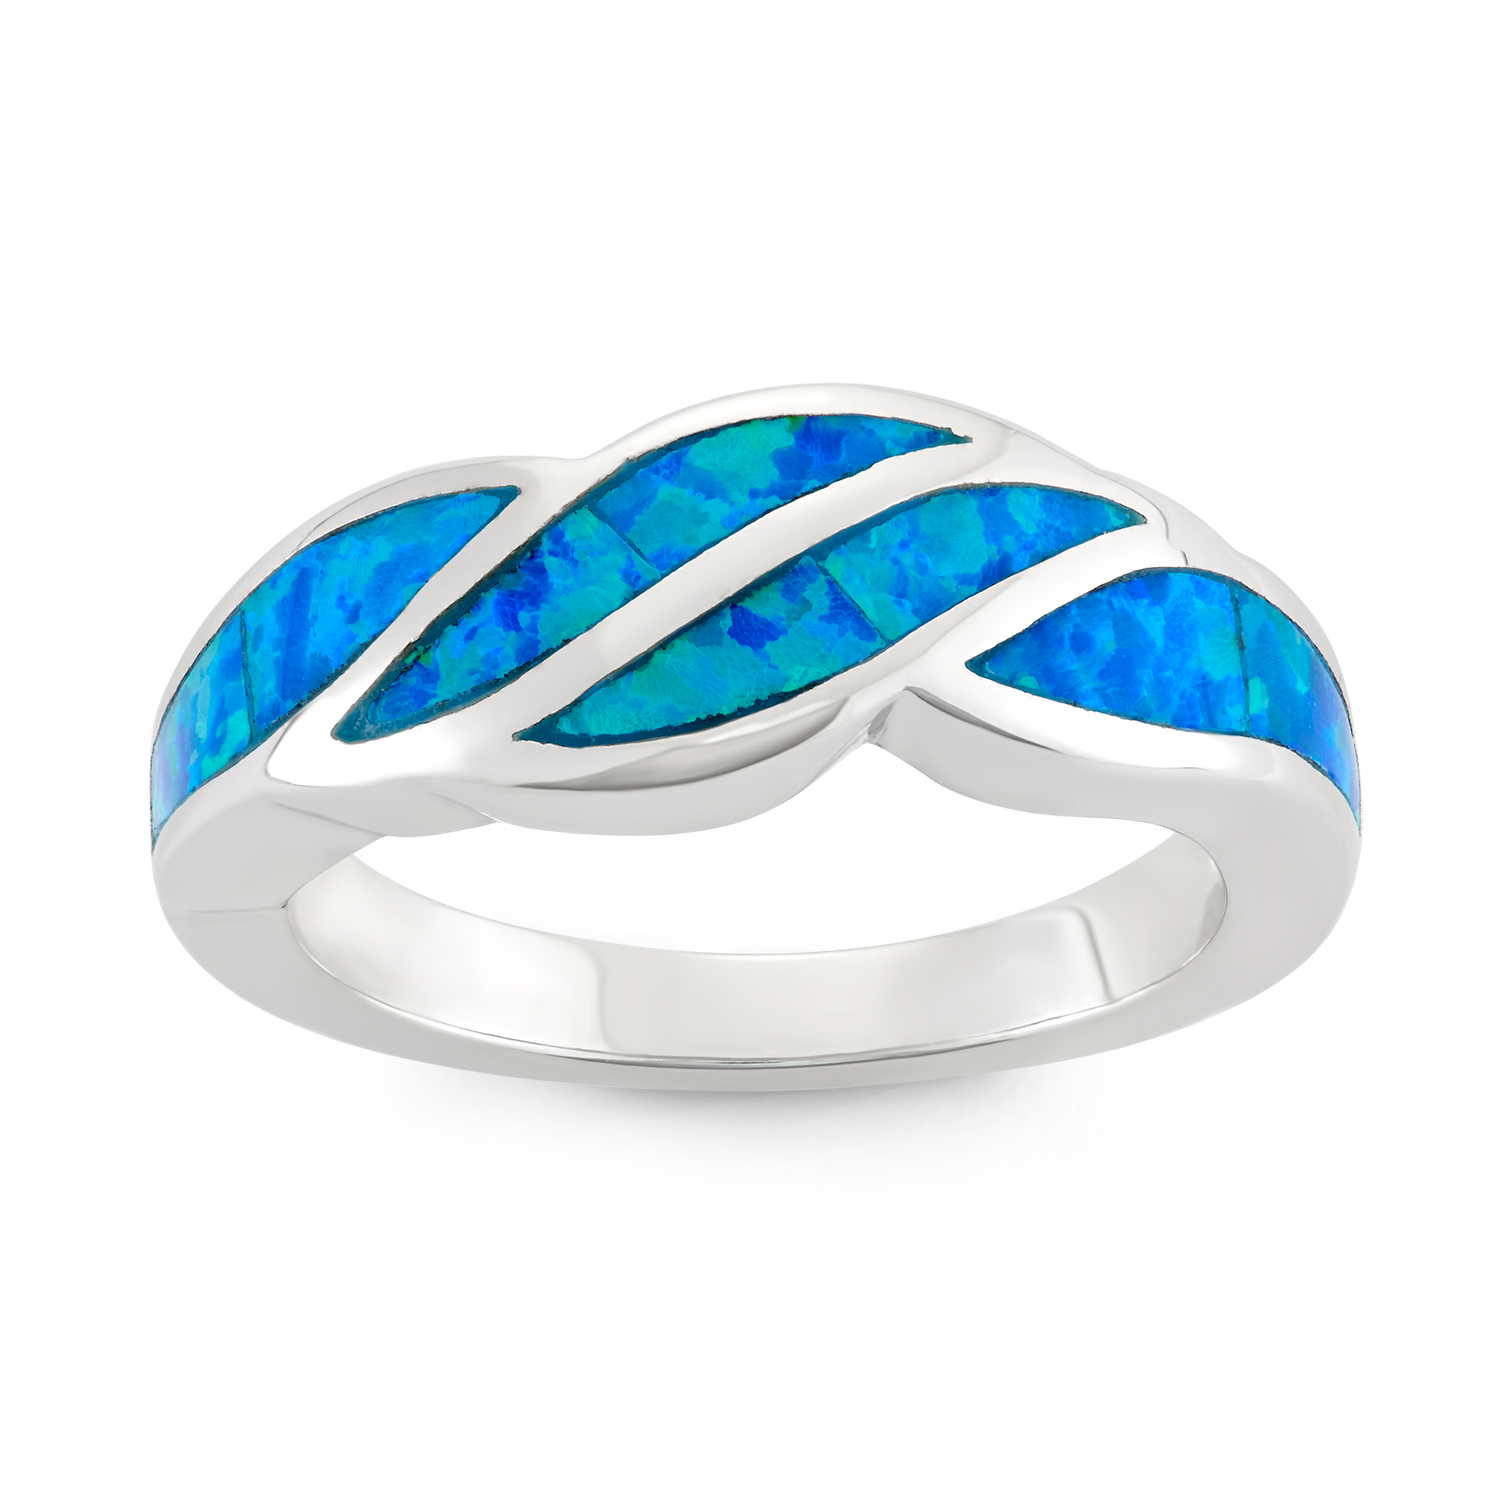 Beaux Bijoux Sterling Silver Blue Opal Designed Band Ring